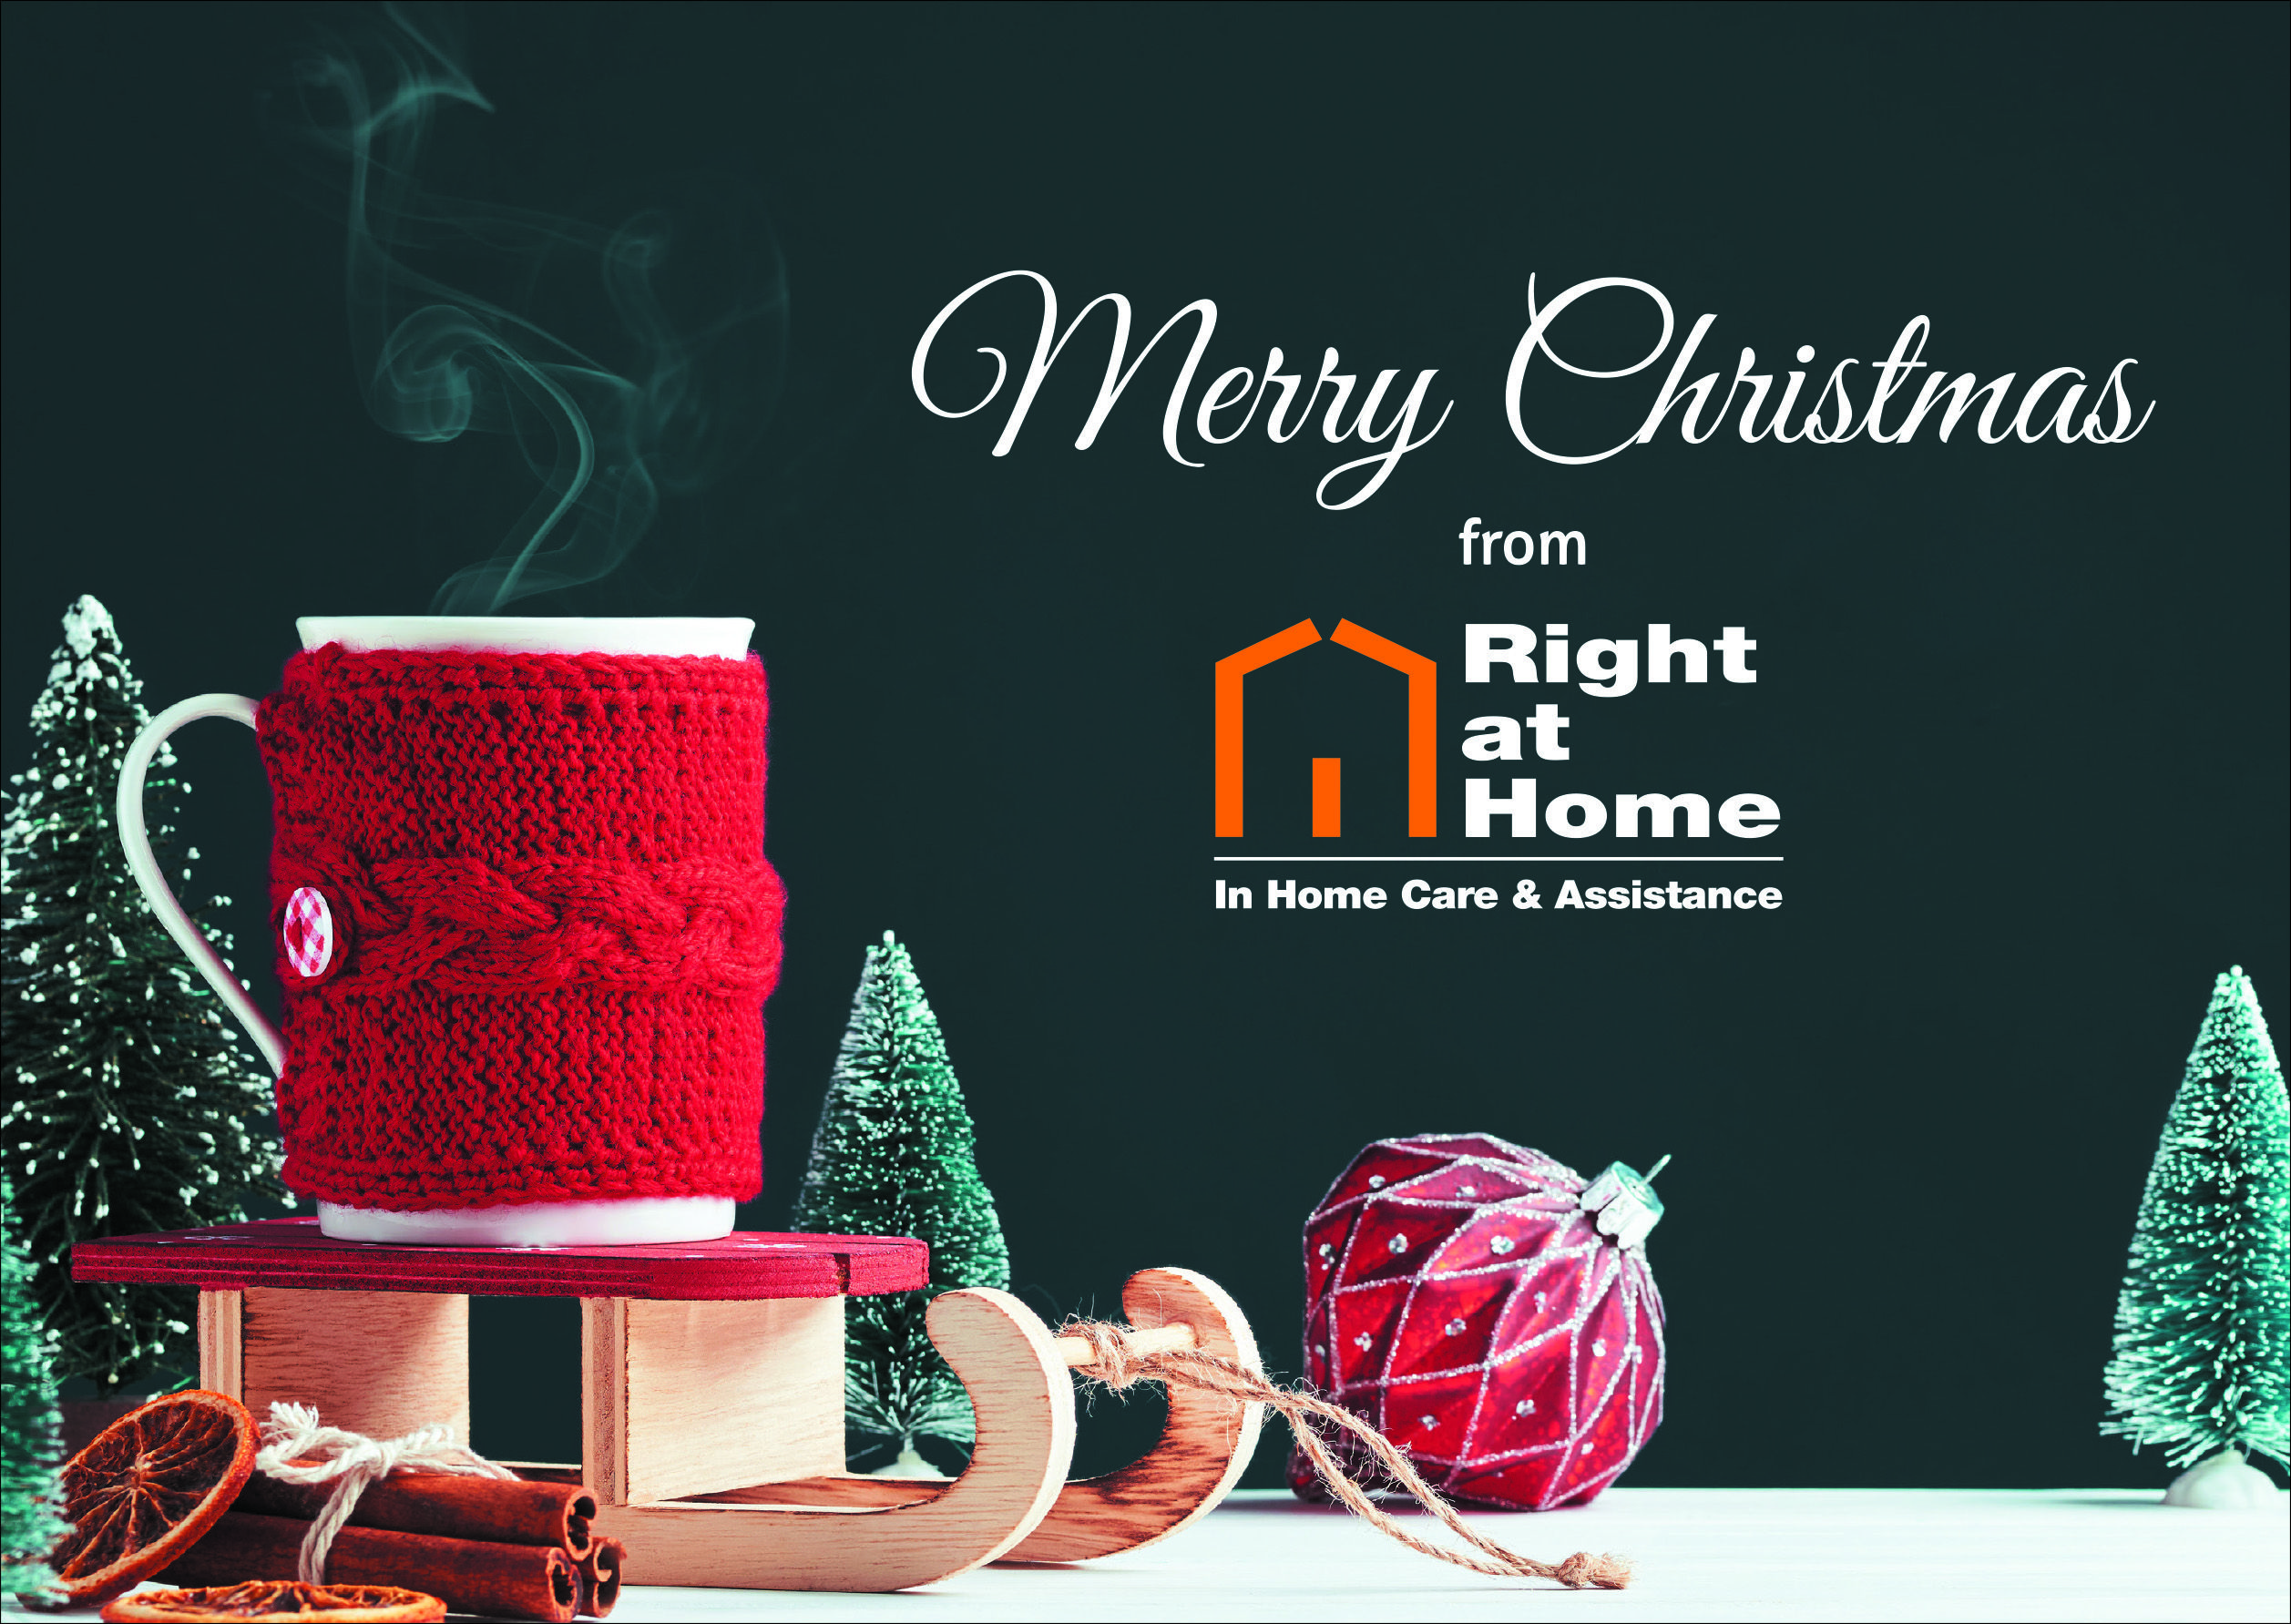 Happy Christmas Right at Home